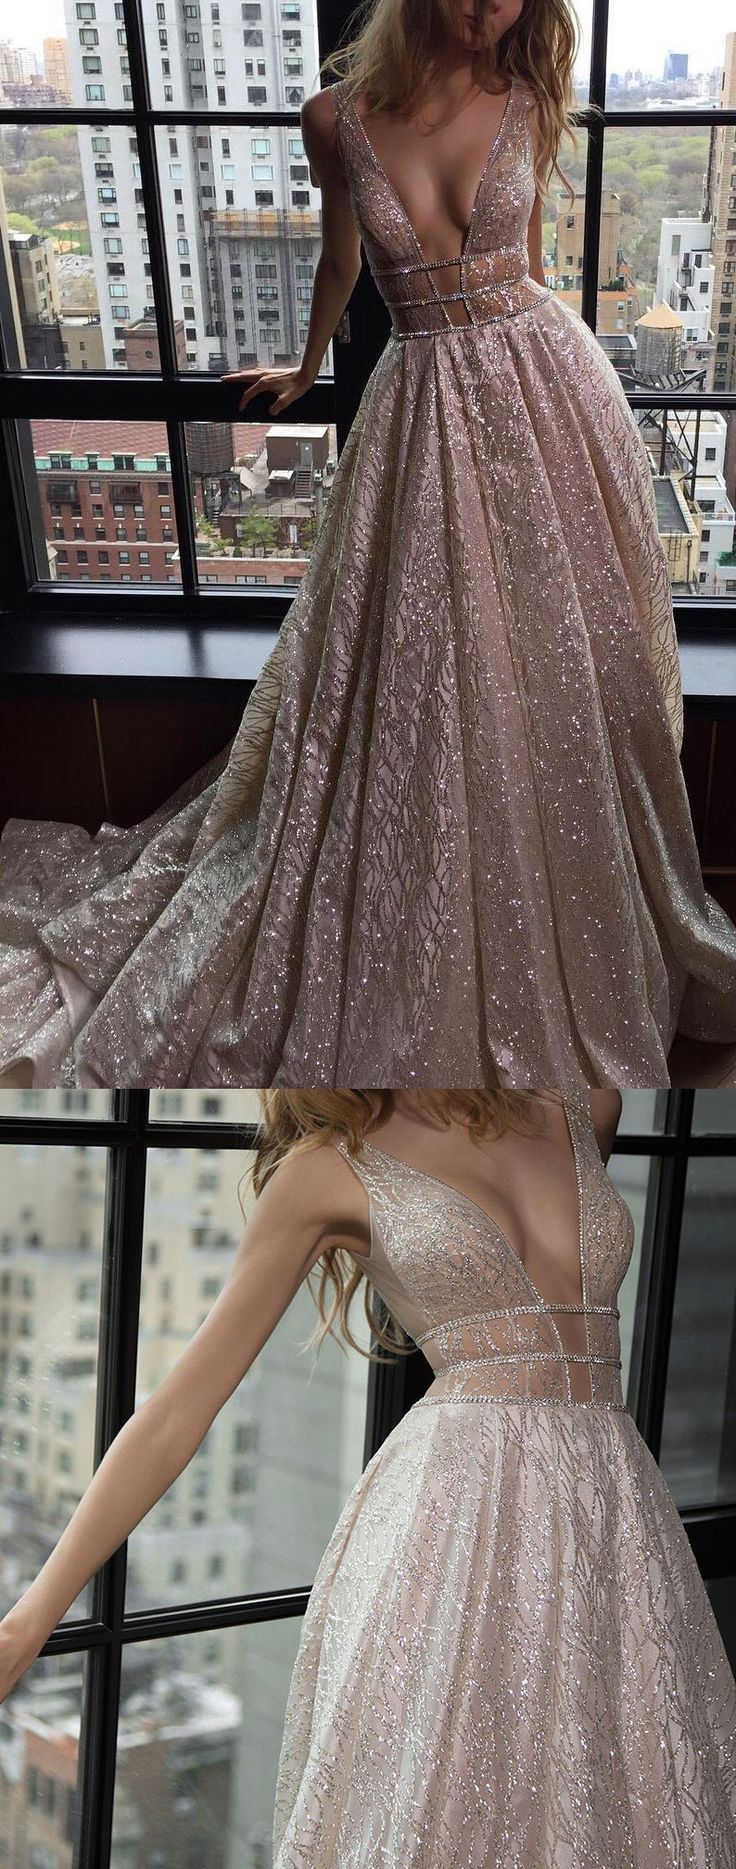 Long Prom Dresses, Silver Prom Dresses, Sequin Prom Dresses, Prom Dresses Long, Prom Dresses With Straps, Prom Long Dresses, Hot Prom Dresses, Long Evening Dresses, Silver Sequin dresses, Long Sequin dresses, Zipper Evening Dresses, Sequin Evening Dresses, Sweep Train Prom Dresses, Straps Prom Dresses